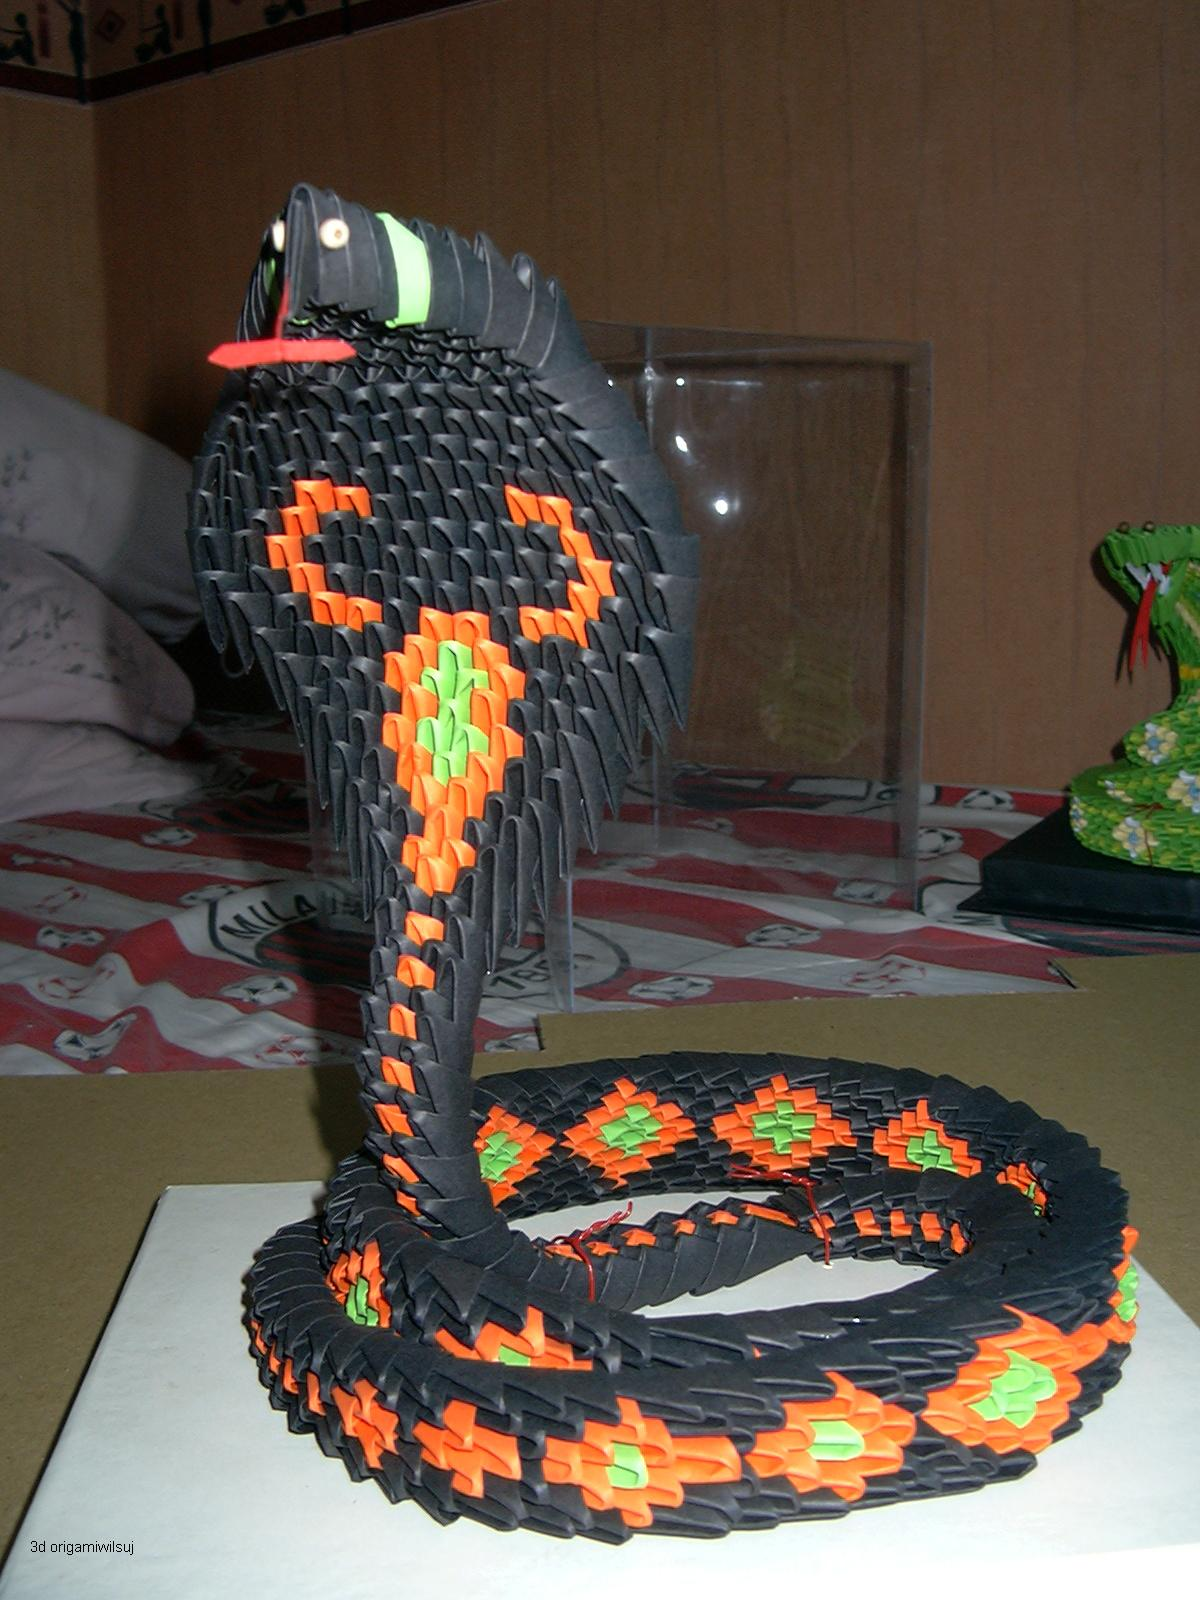 ICHANOKO 3D ORIGAMI INDONESIA: 3d origami - Animals snake ... - photo#42